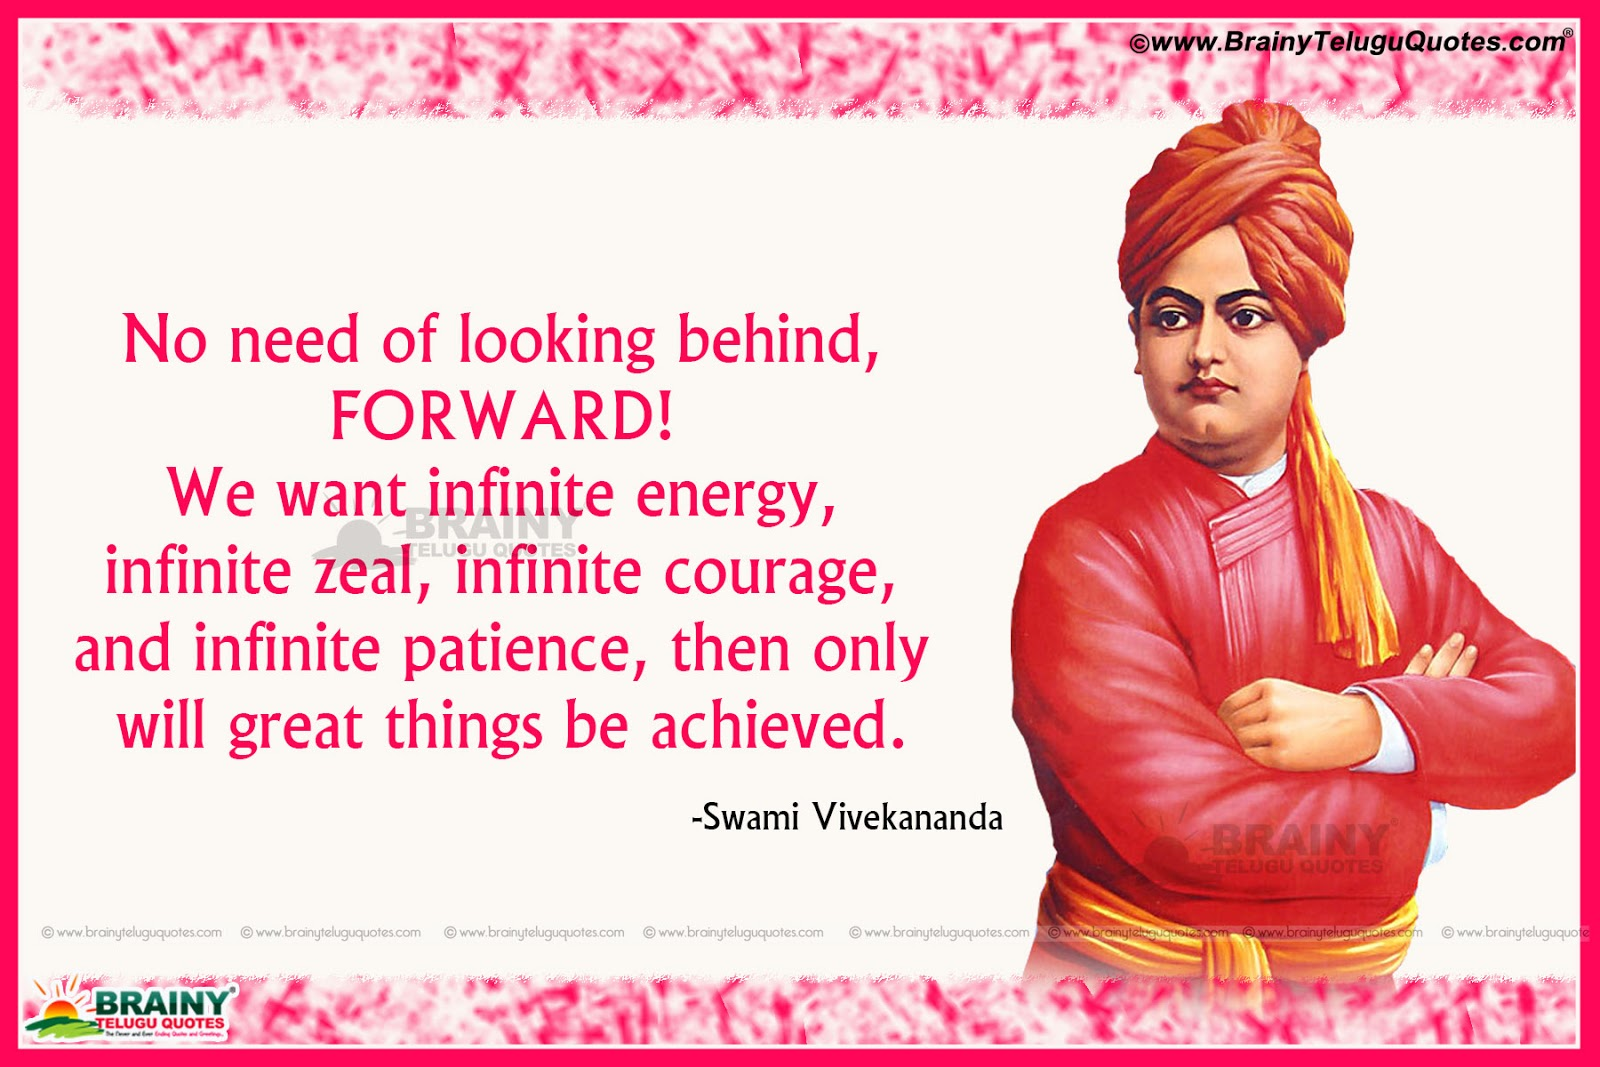 swami vivekananda inspirational quotes gallery